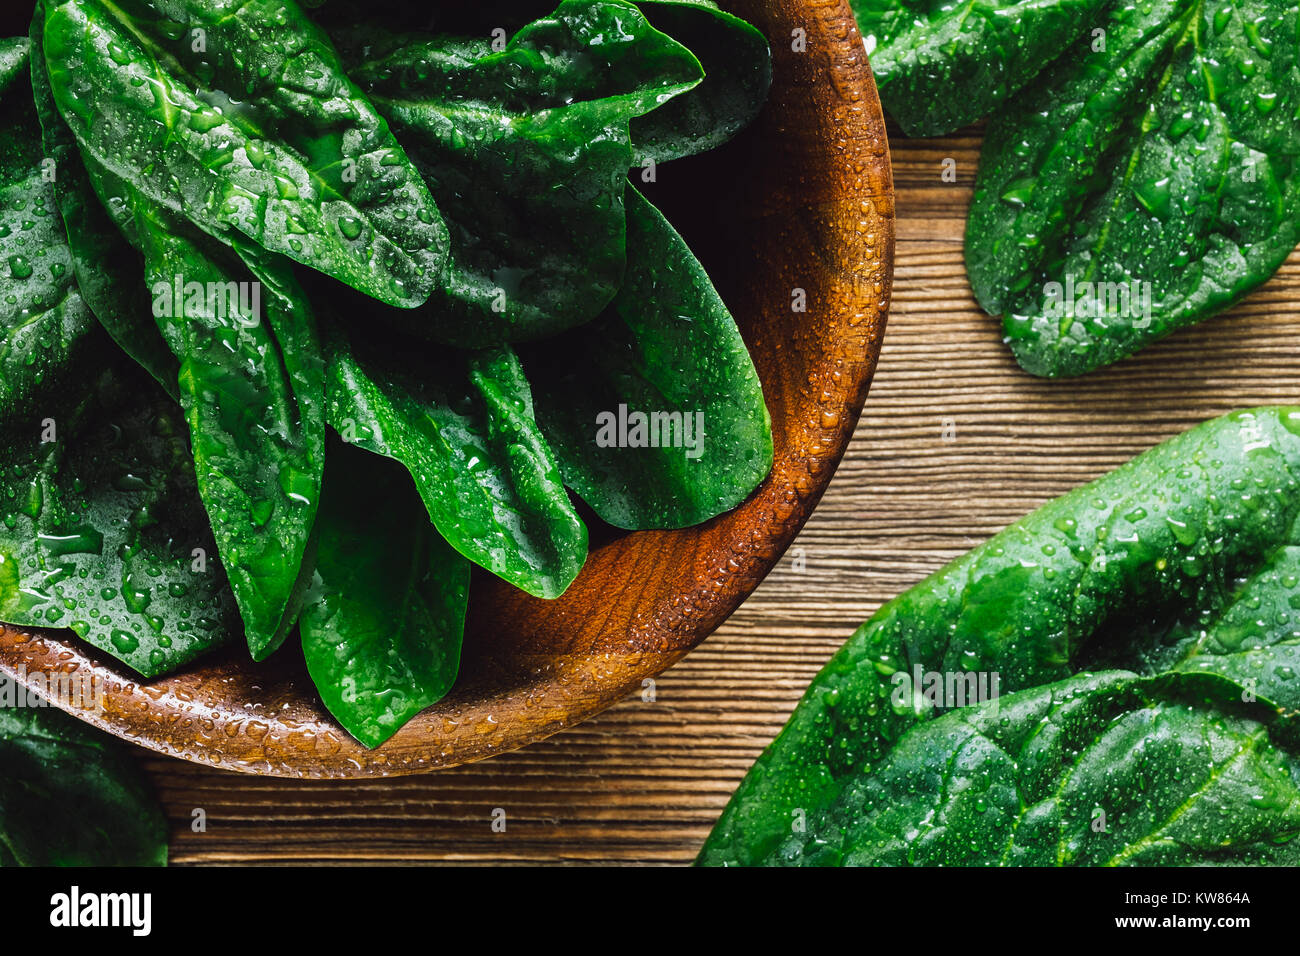 Freshly Washed Spinach Leaves in Teak Bowl on Cedar Wood Table - Stock Image